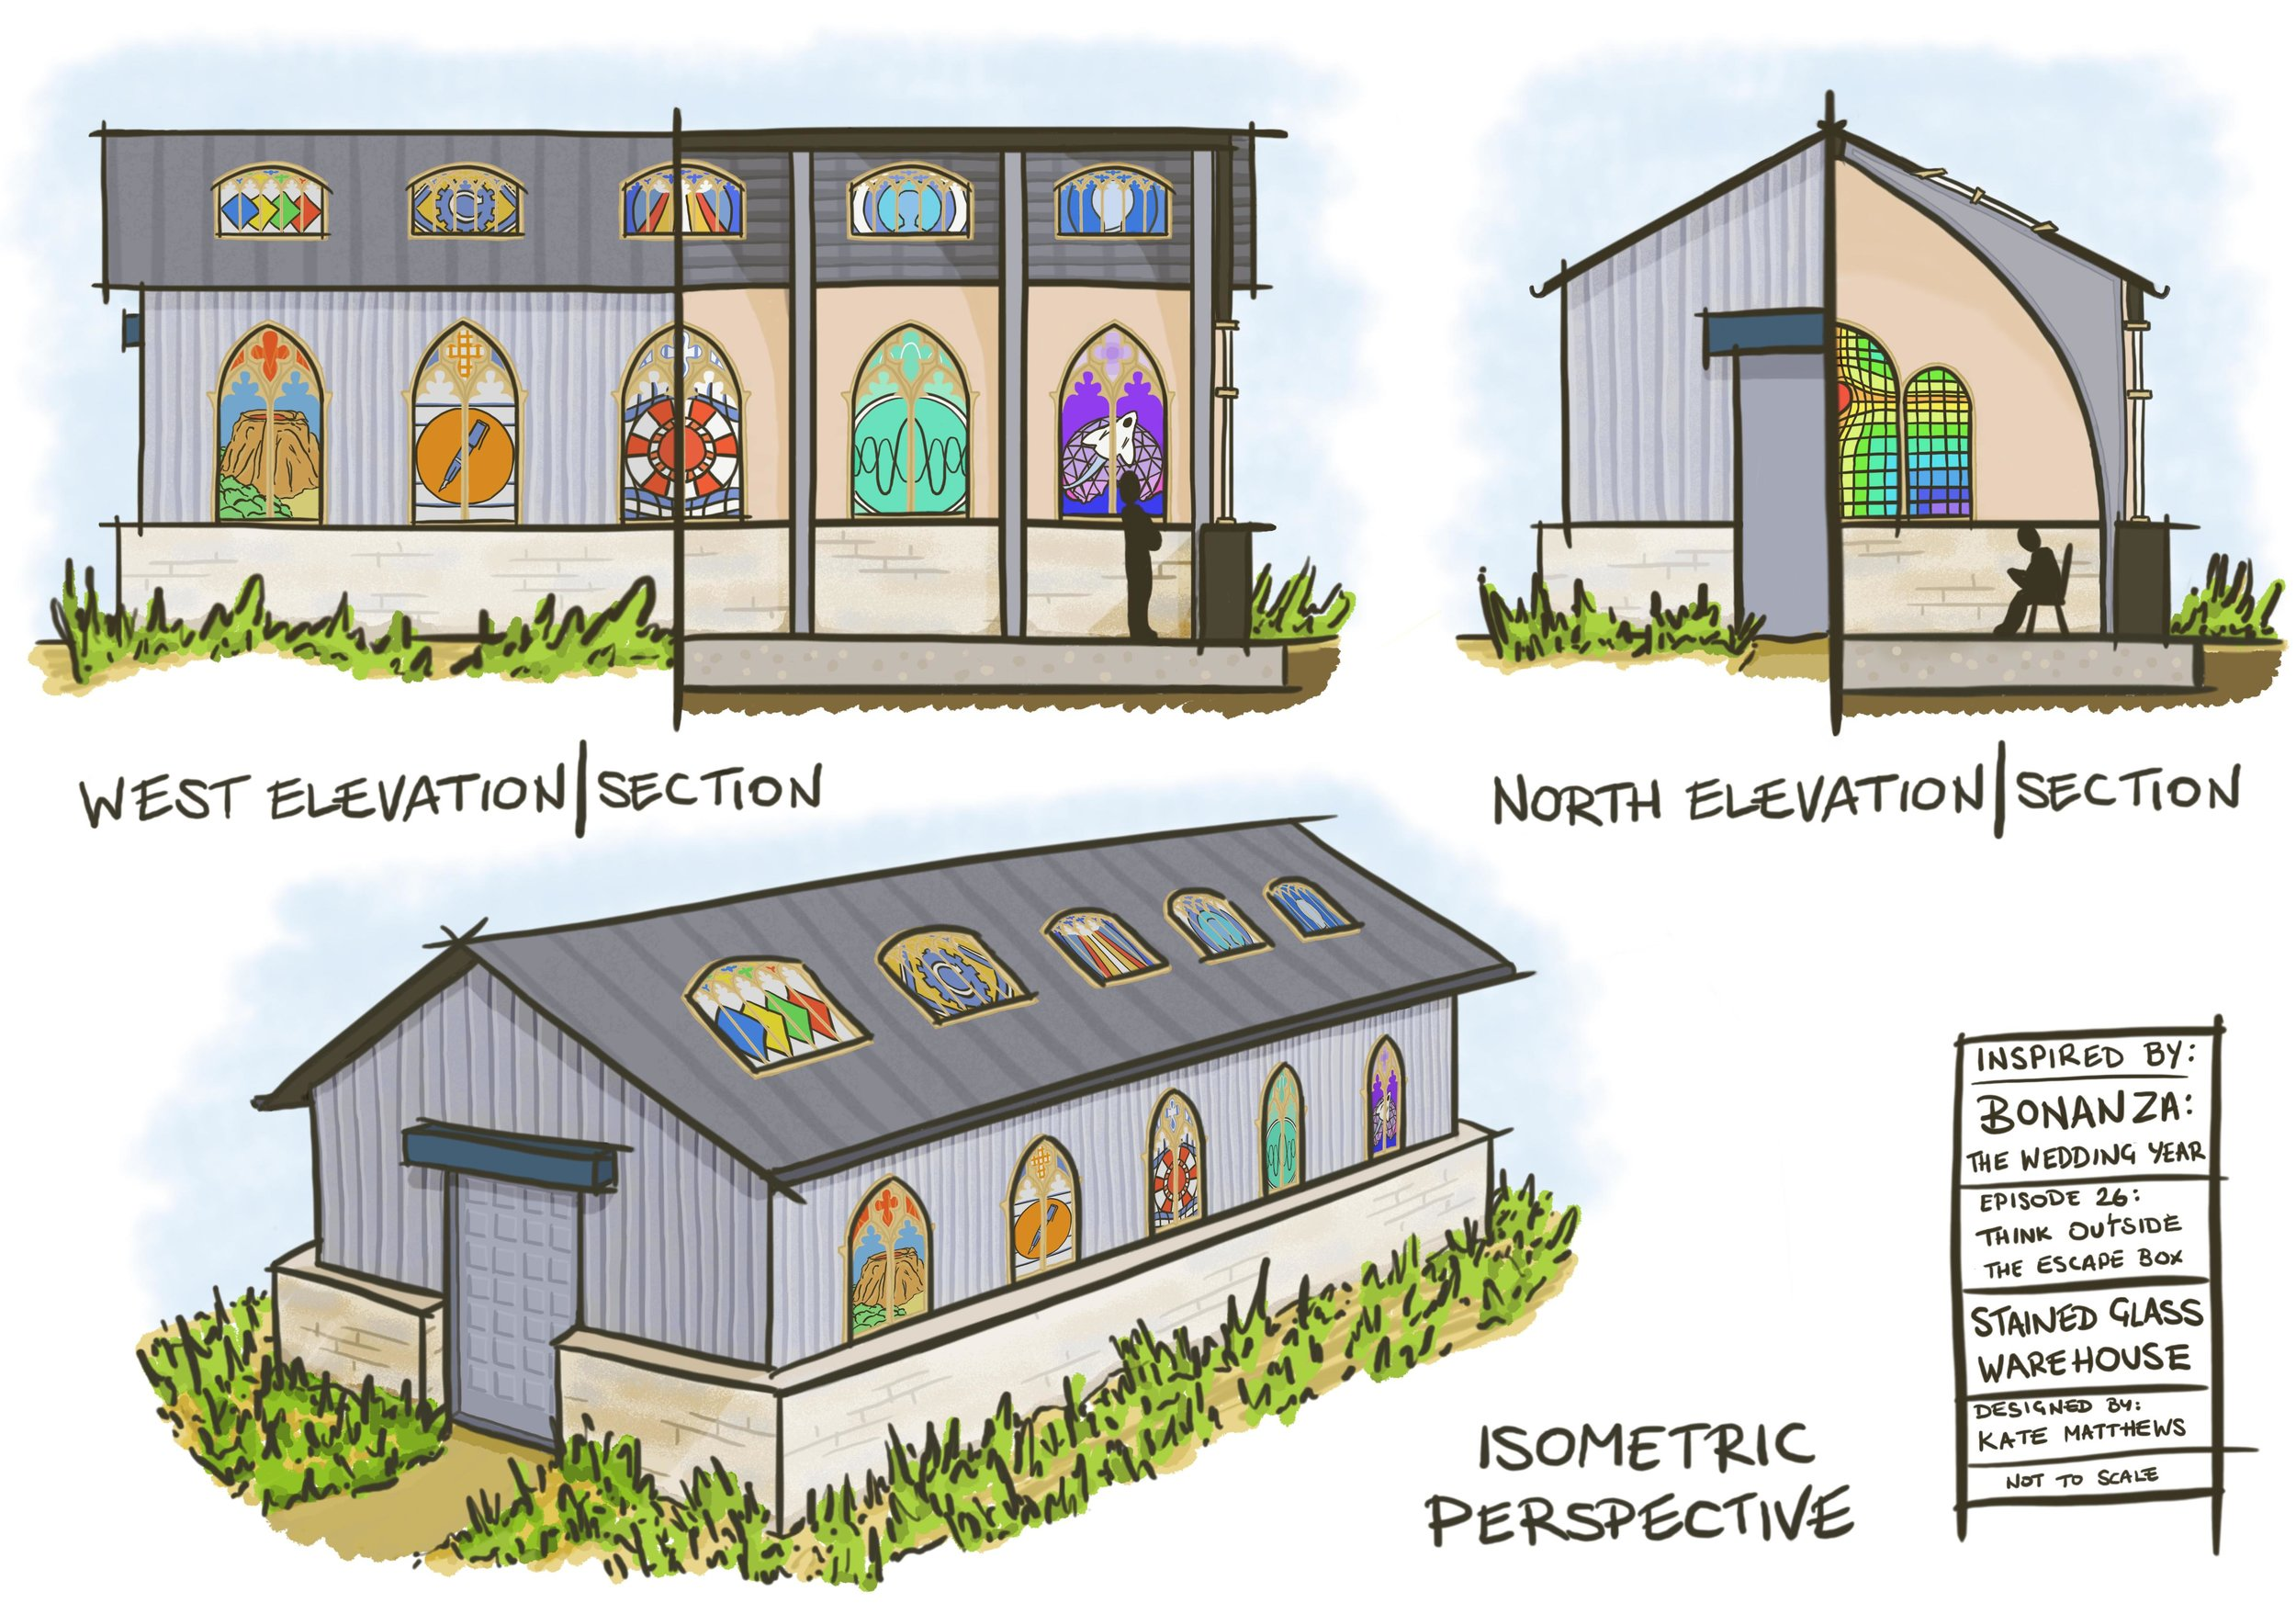 stained glass warehouse layout v1.jpg